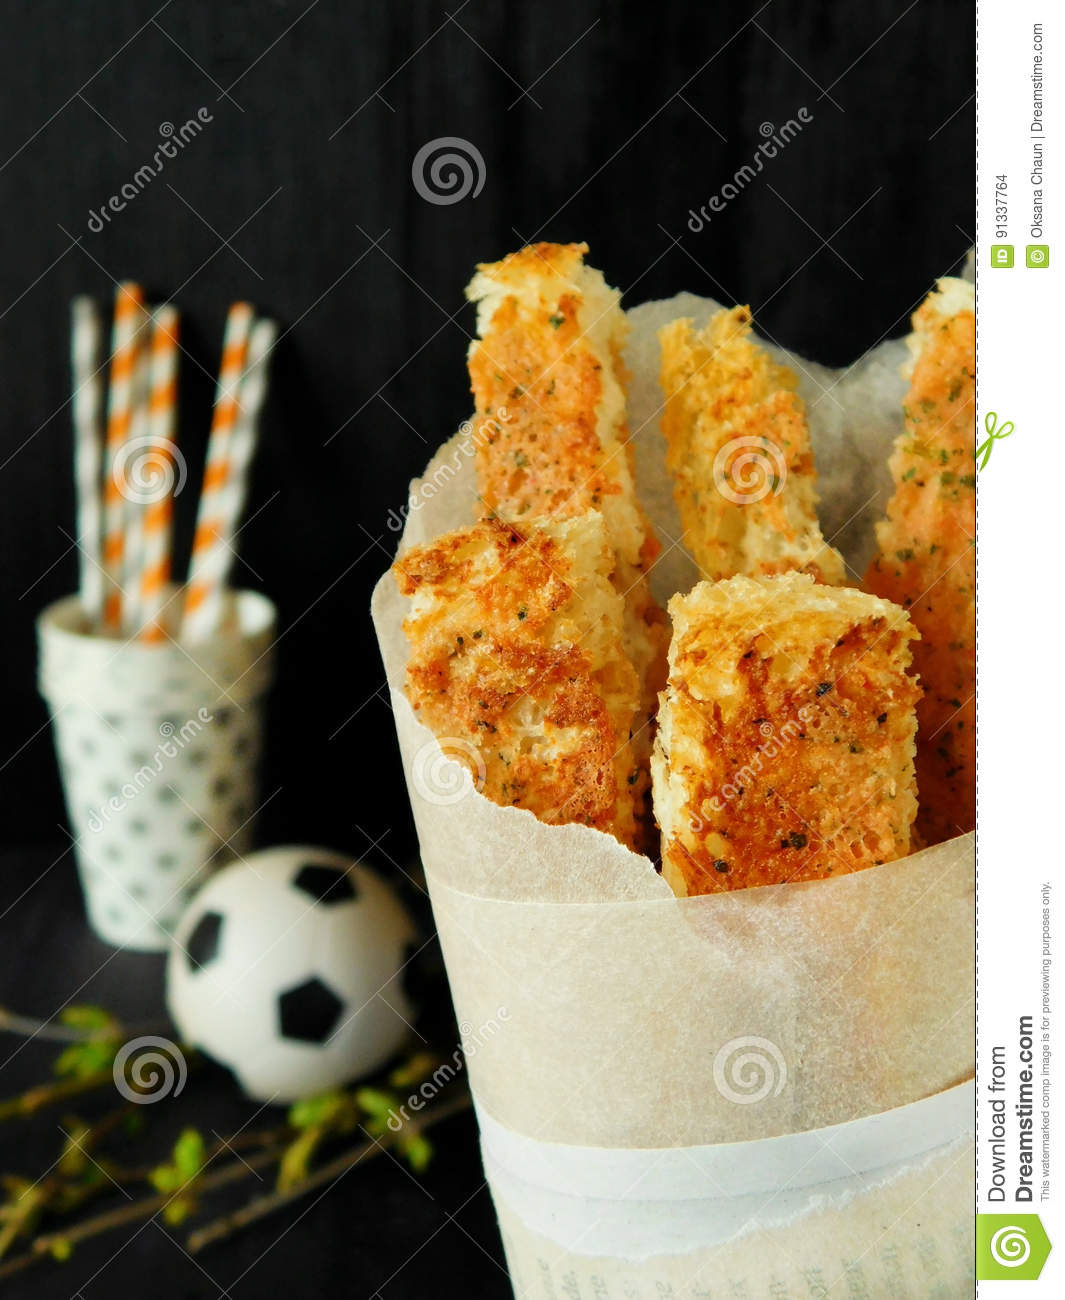 eff40325f73e1 Crispy Snacks In A Paper Bag Stock Photo - Image of chips, party ...